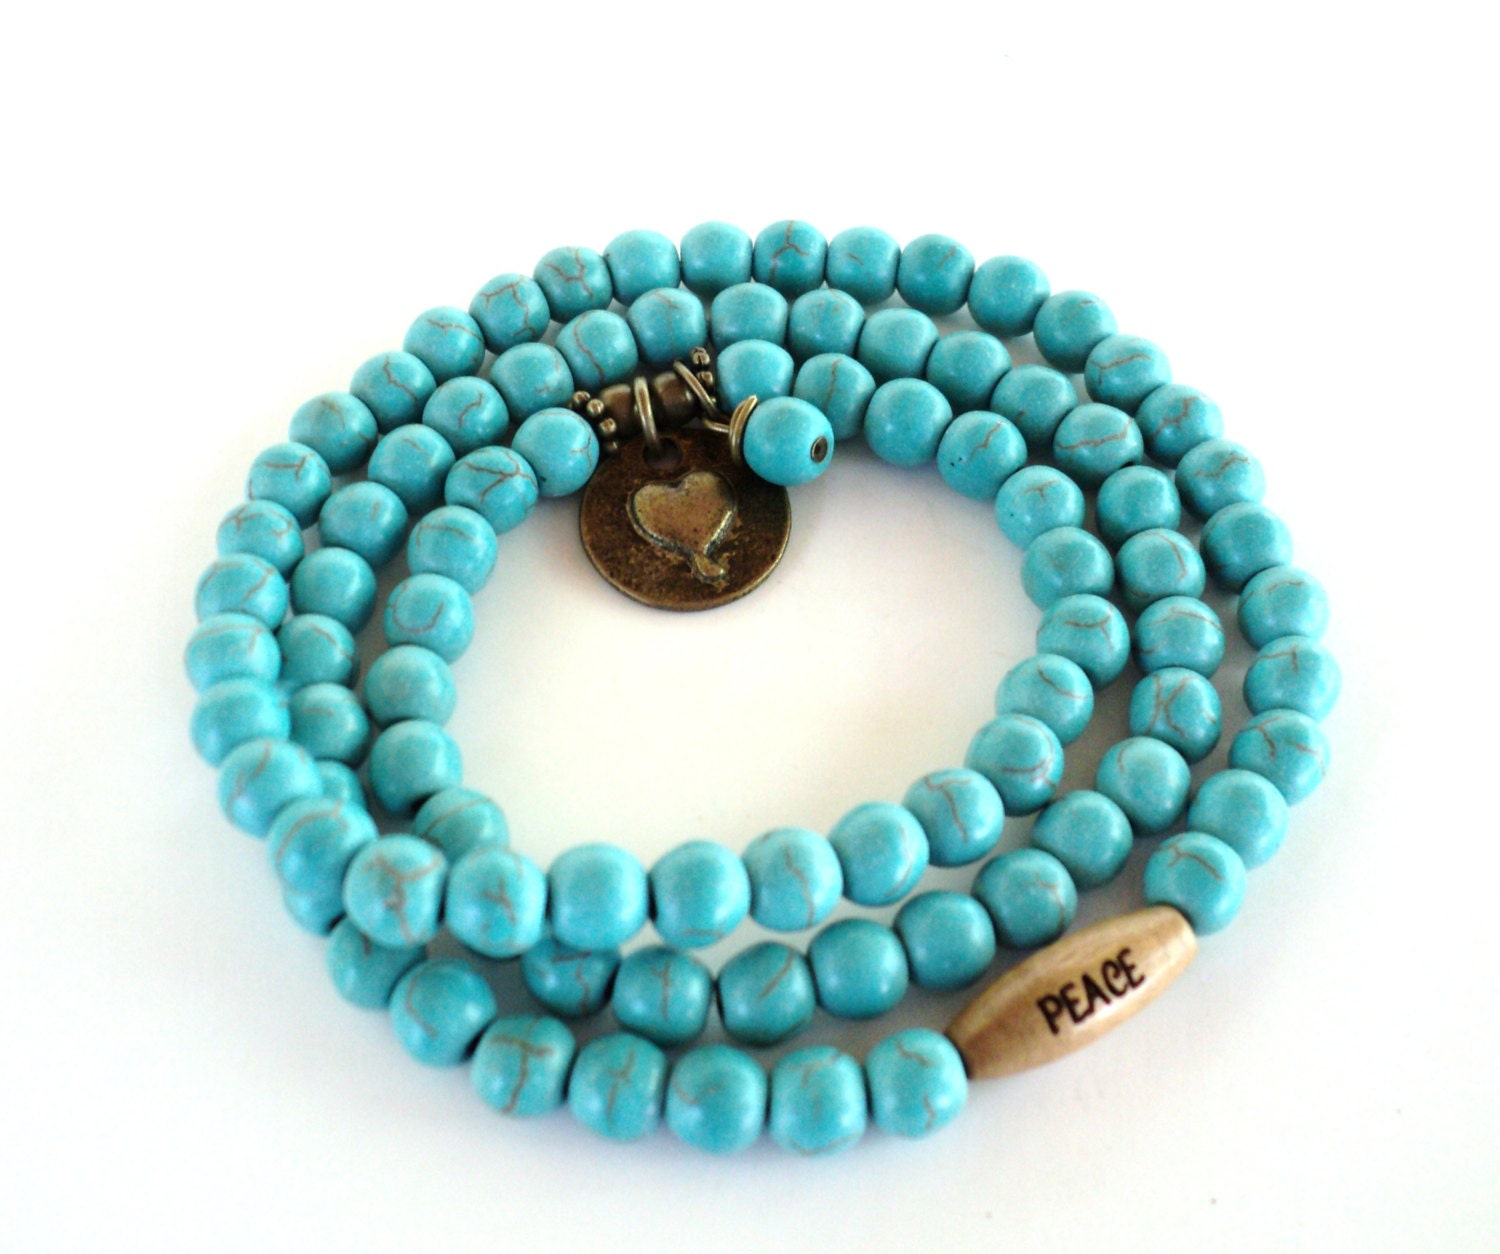 Love Wrist Wrap Bracelet Yoga Jewelry Turquoise Bohemian. Faberge Brooch. Beach Diamond. Antler Engagement Rings. Ankle Charm Bracelet. Cremation Urn Necklace. Cat Eye Sapphire. Mens Rings. Tri Colour Bangles